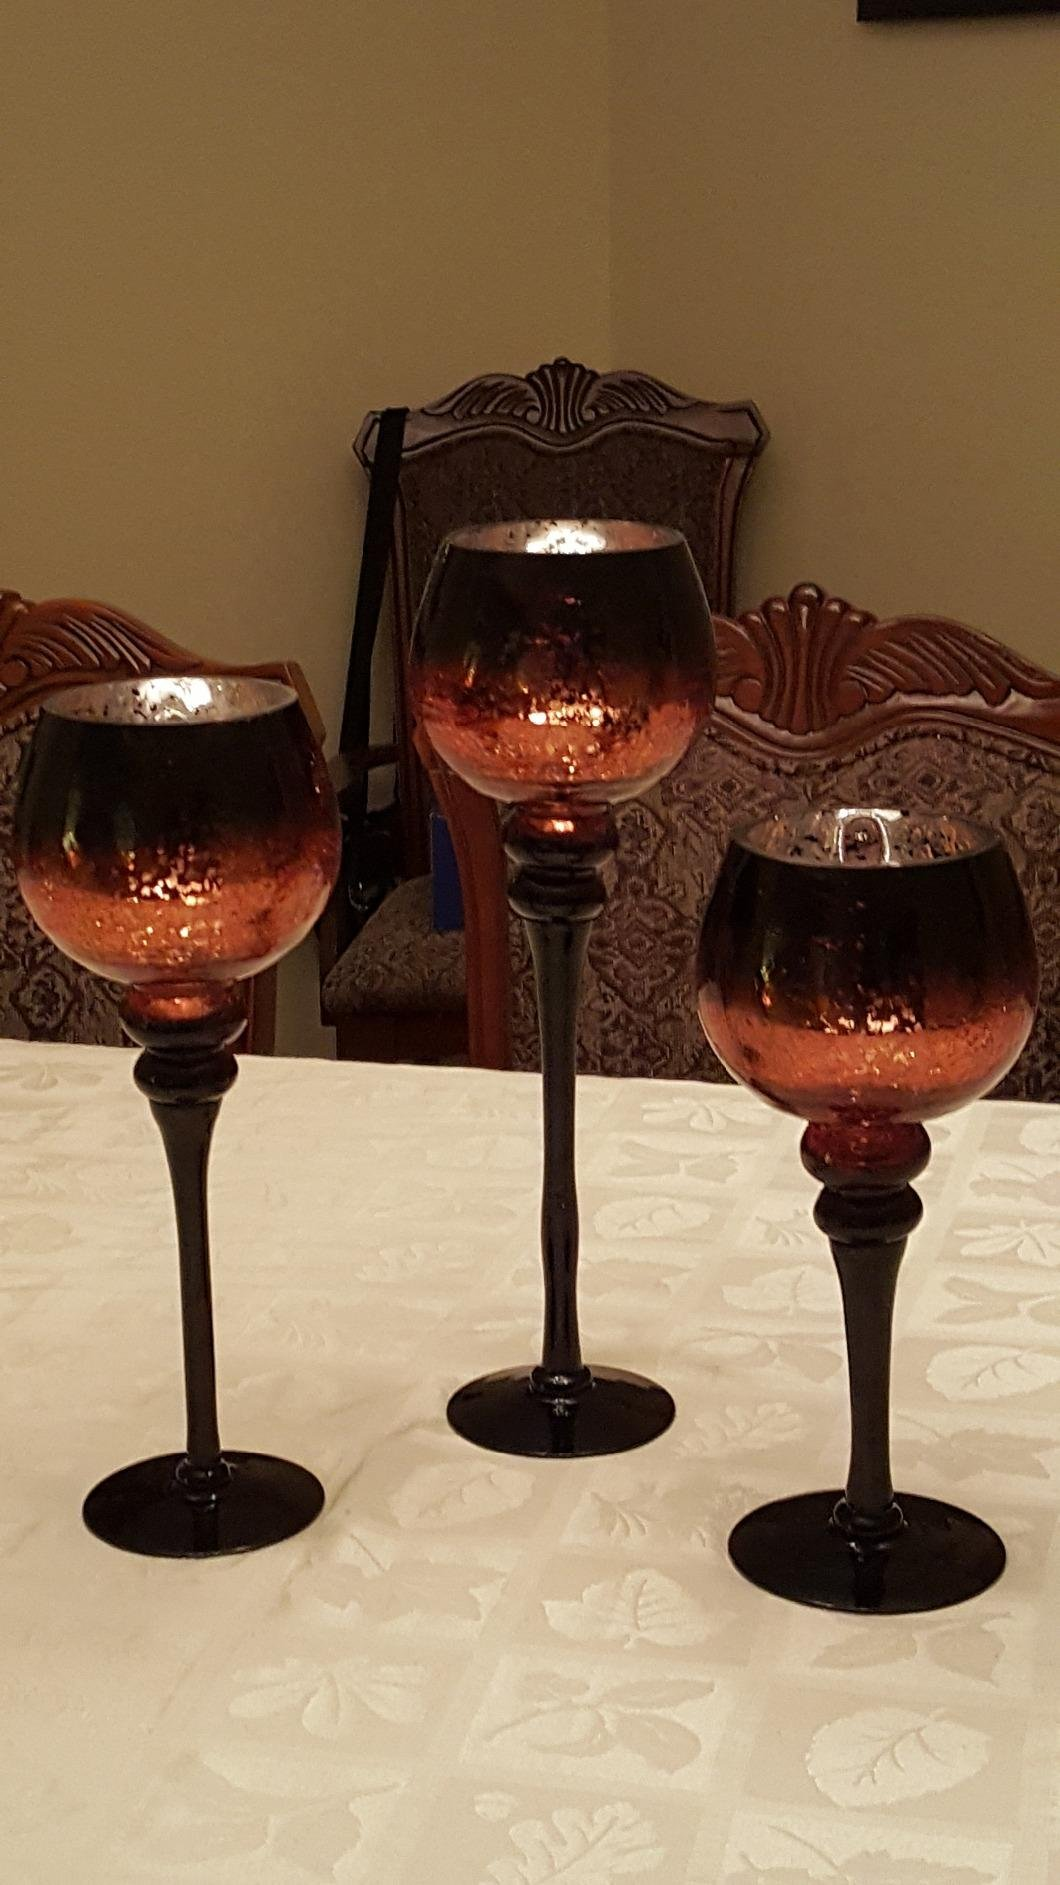 Set of 3 Brown Mercury Chocolate Crackle Finished Glass Hurricane Candle Holders ~ Decorative Sphere Ball Candle Holders ~ Home Decor & Party Centerpiece by Le'raze (Image #5)